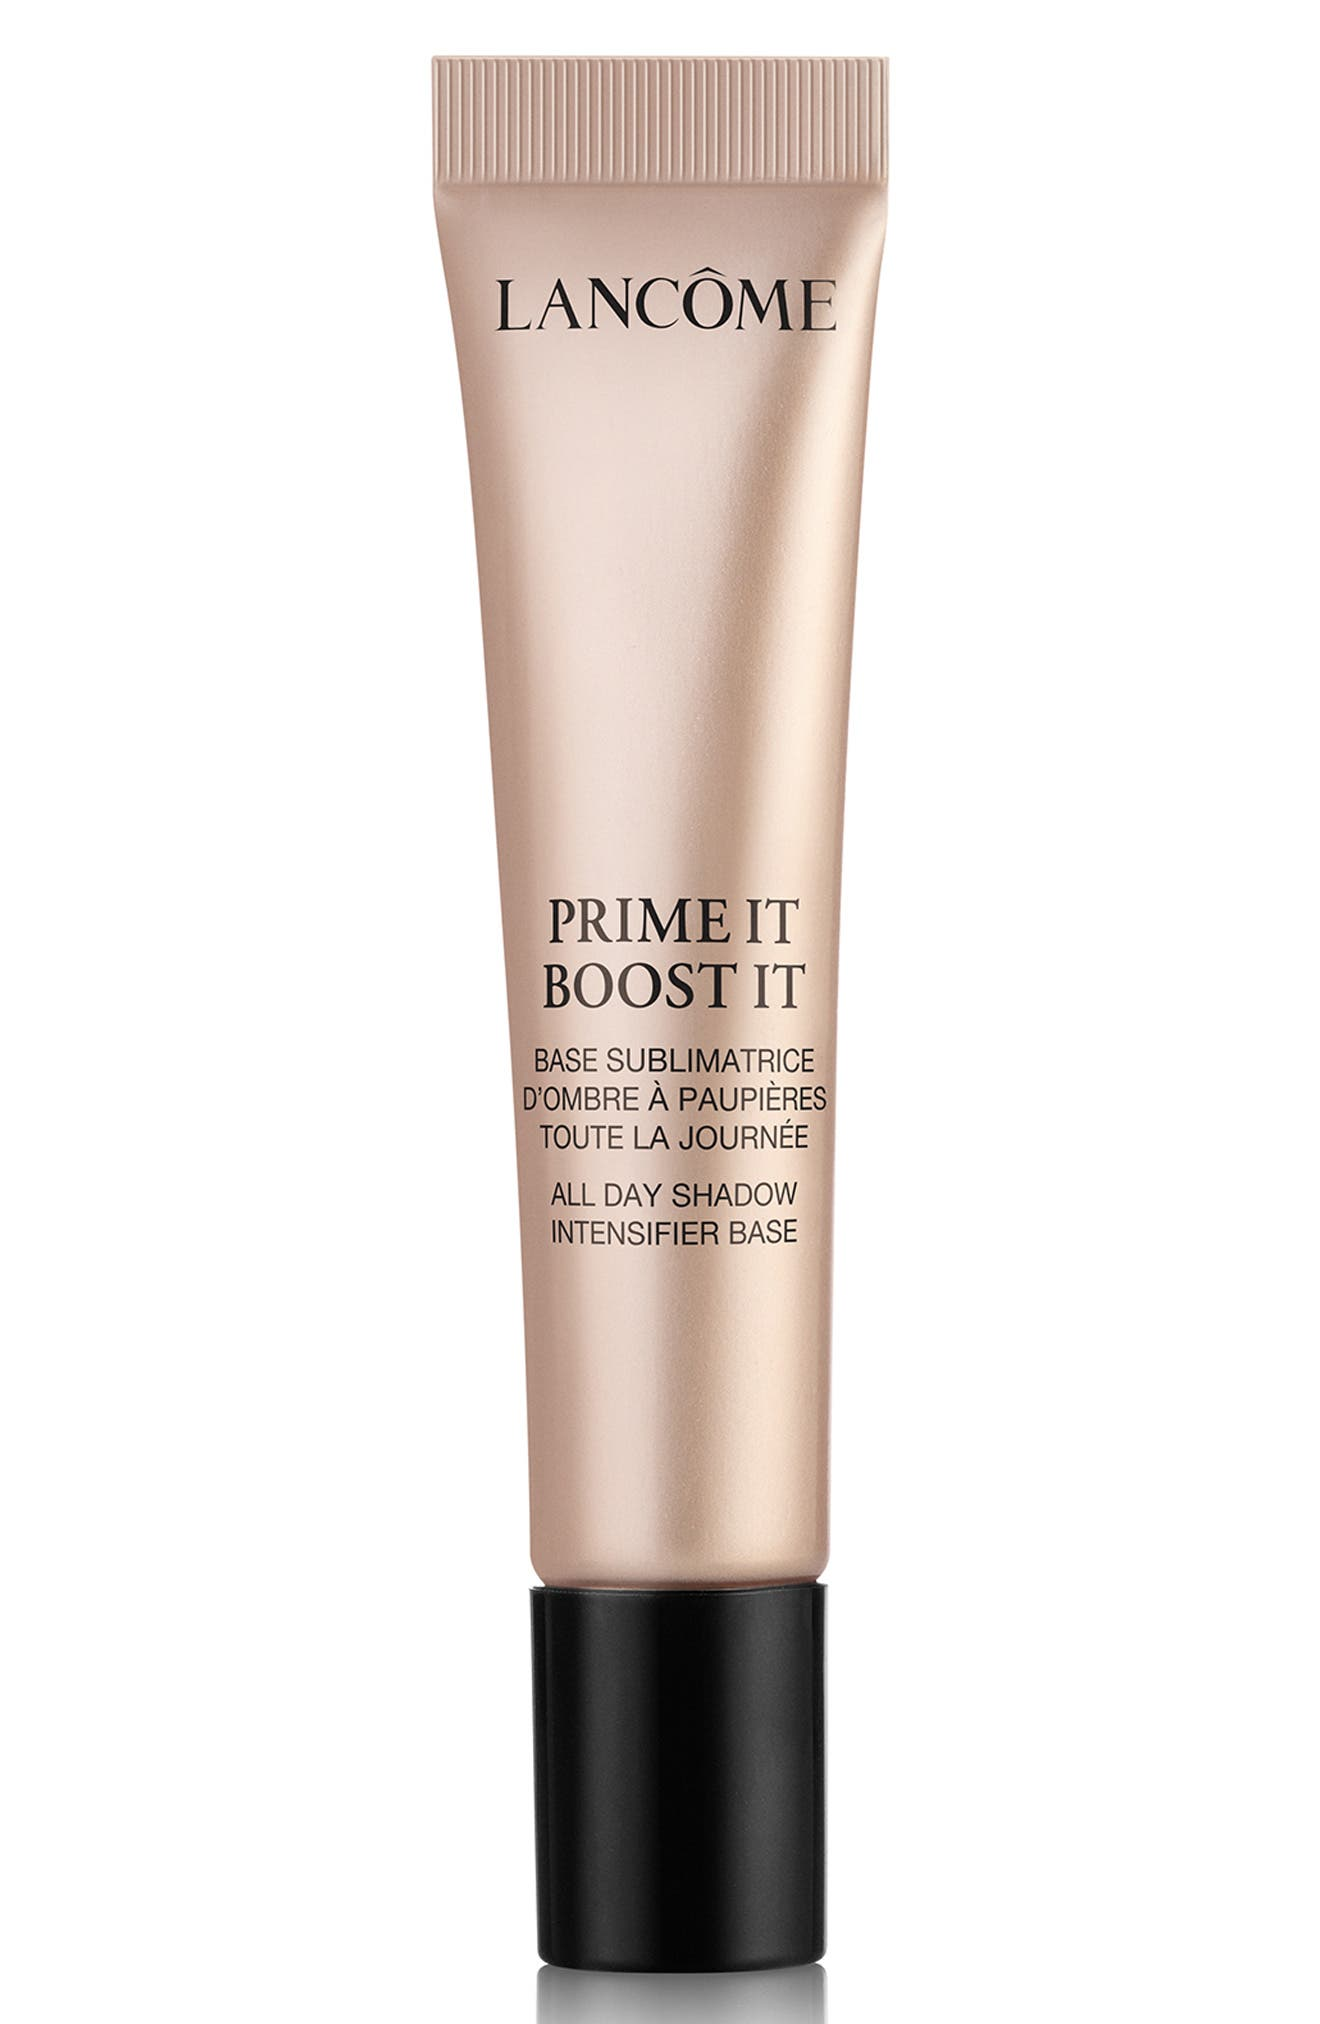 Lancome Prime It Boost It All Day Eyeshadow Primer